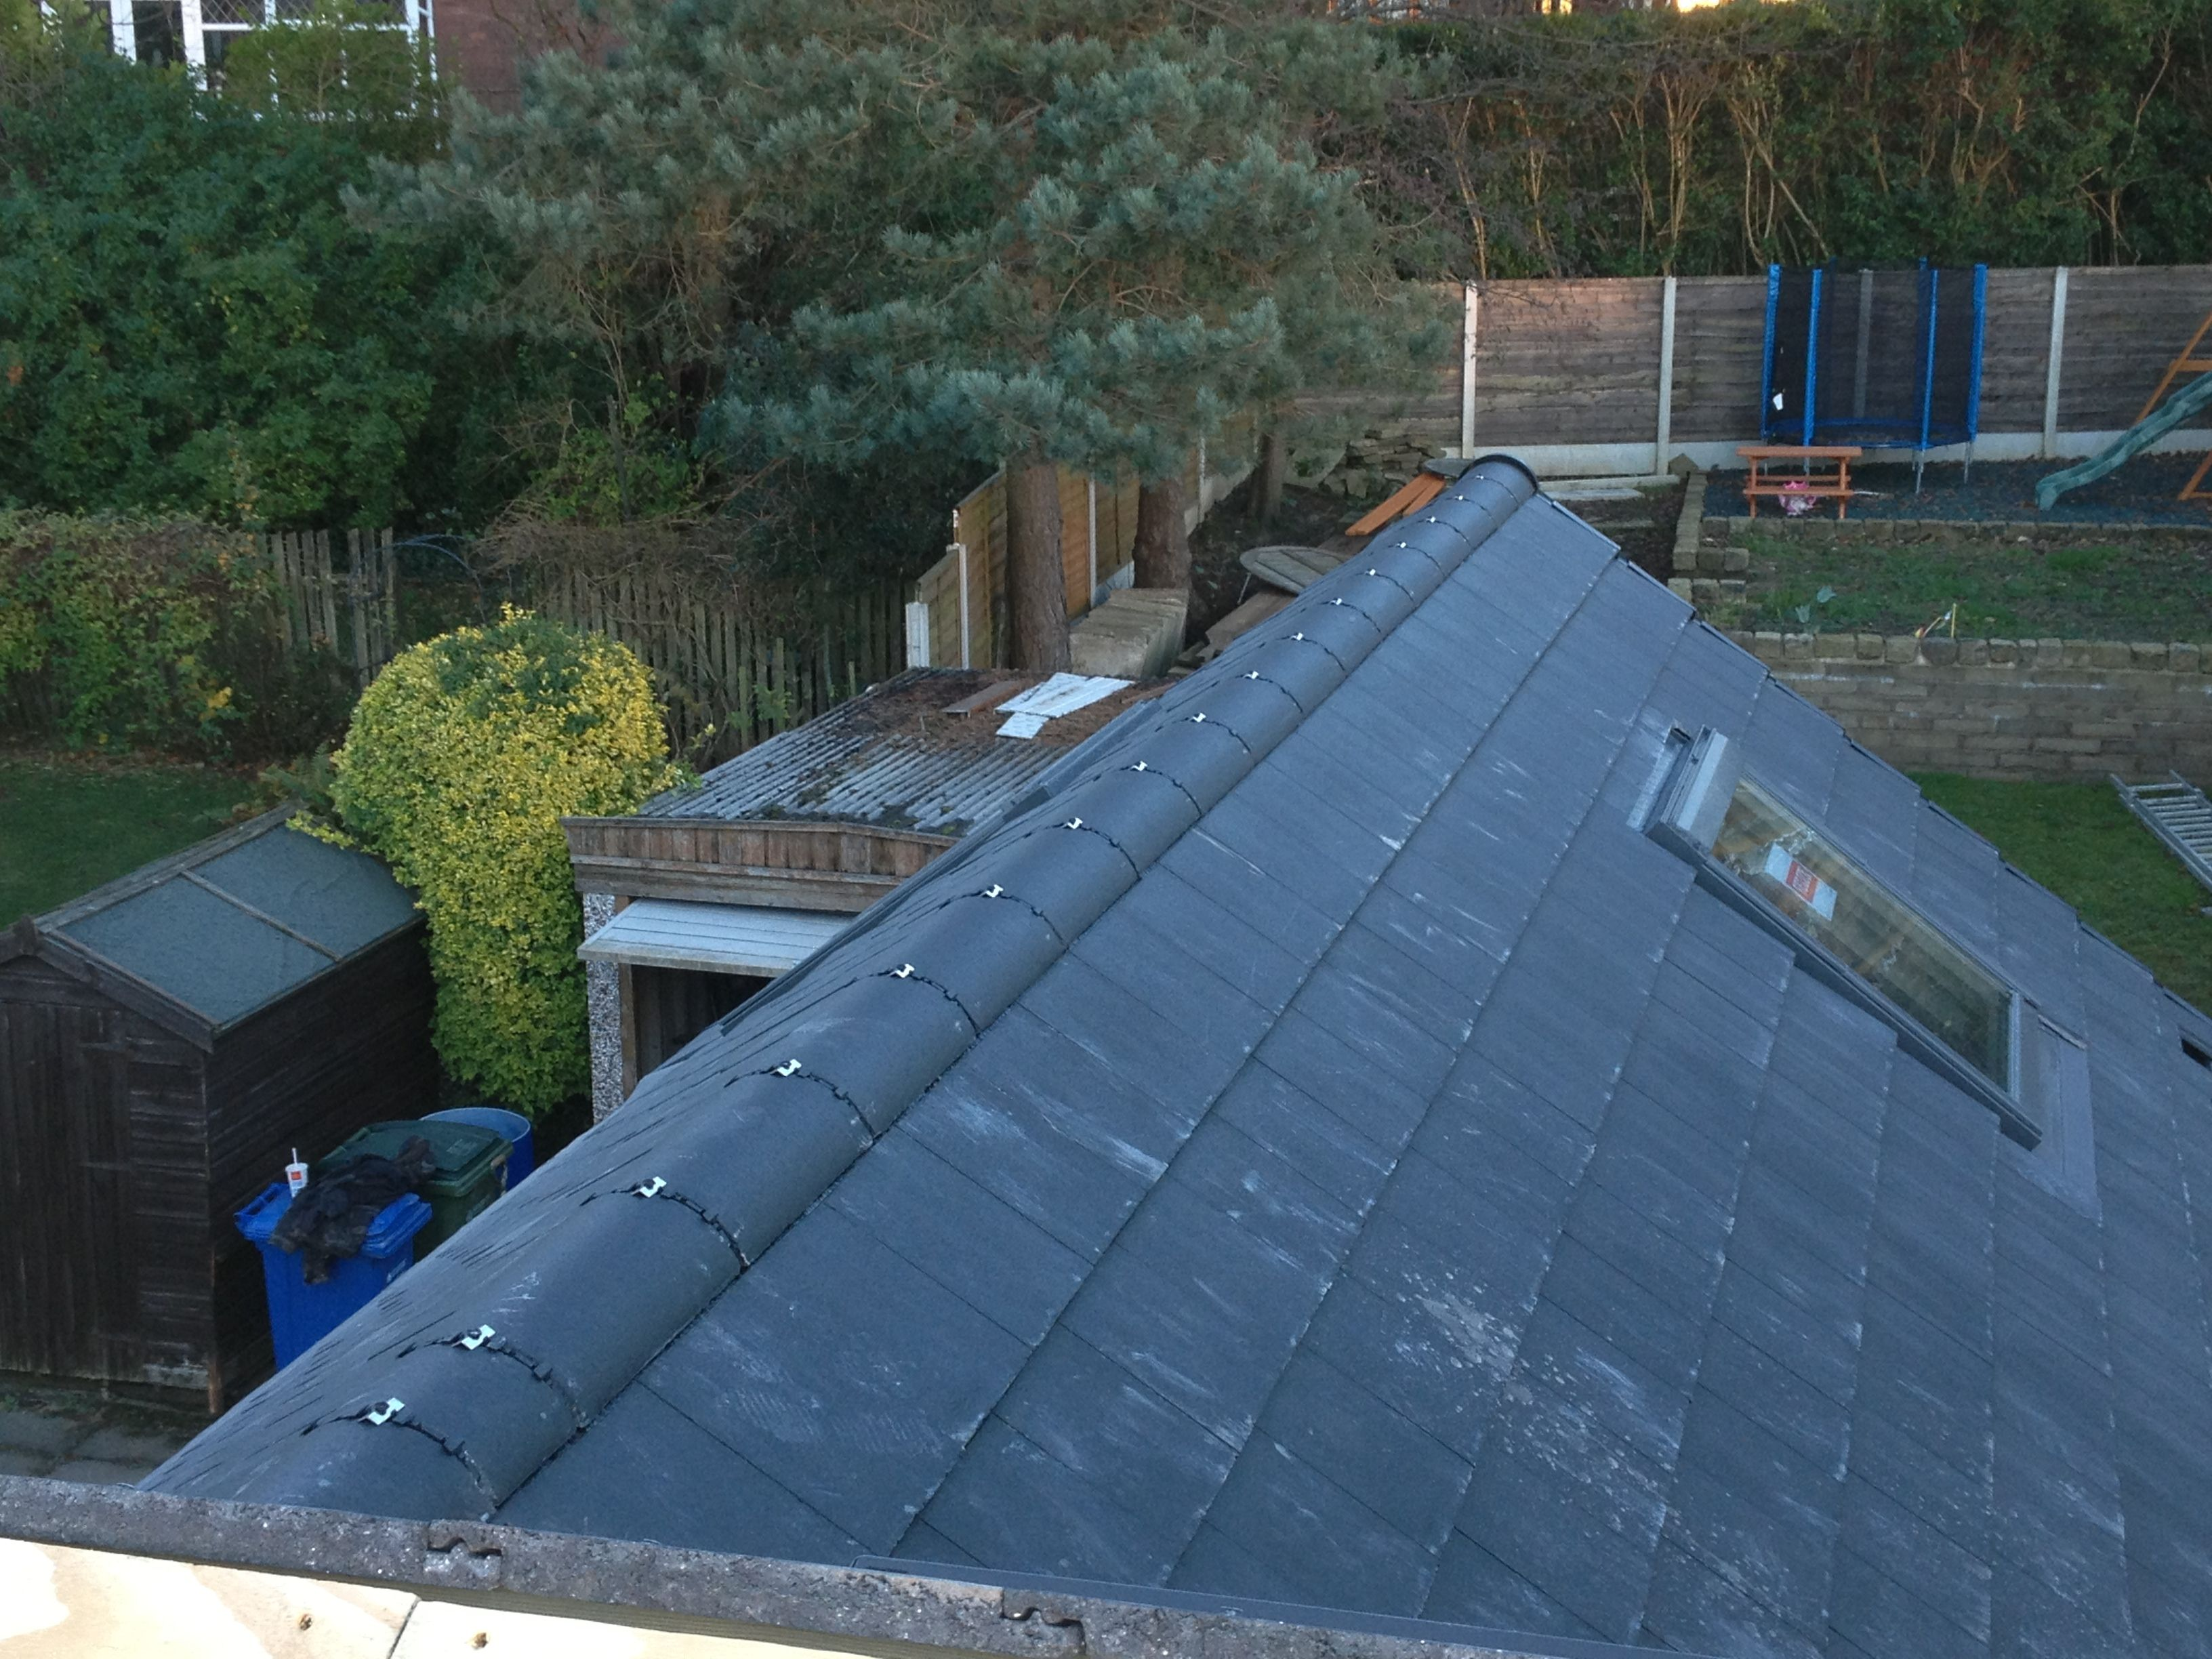 Flat To Pitch Conversion Beddard Roofing Flat Roof Exterior Renovation Roofing